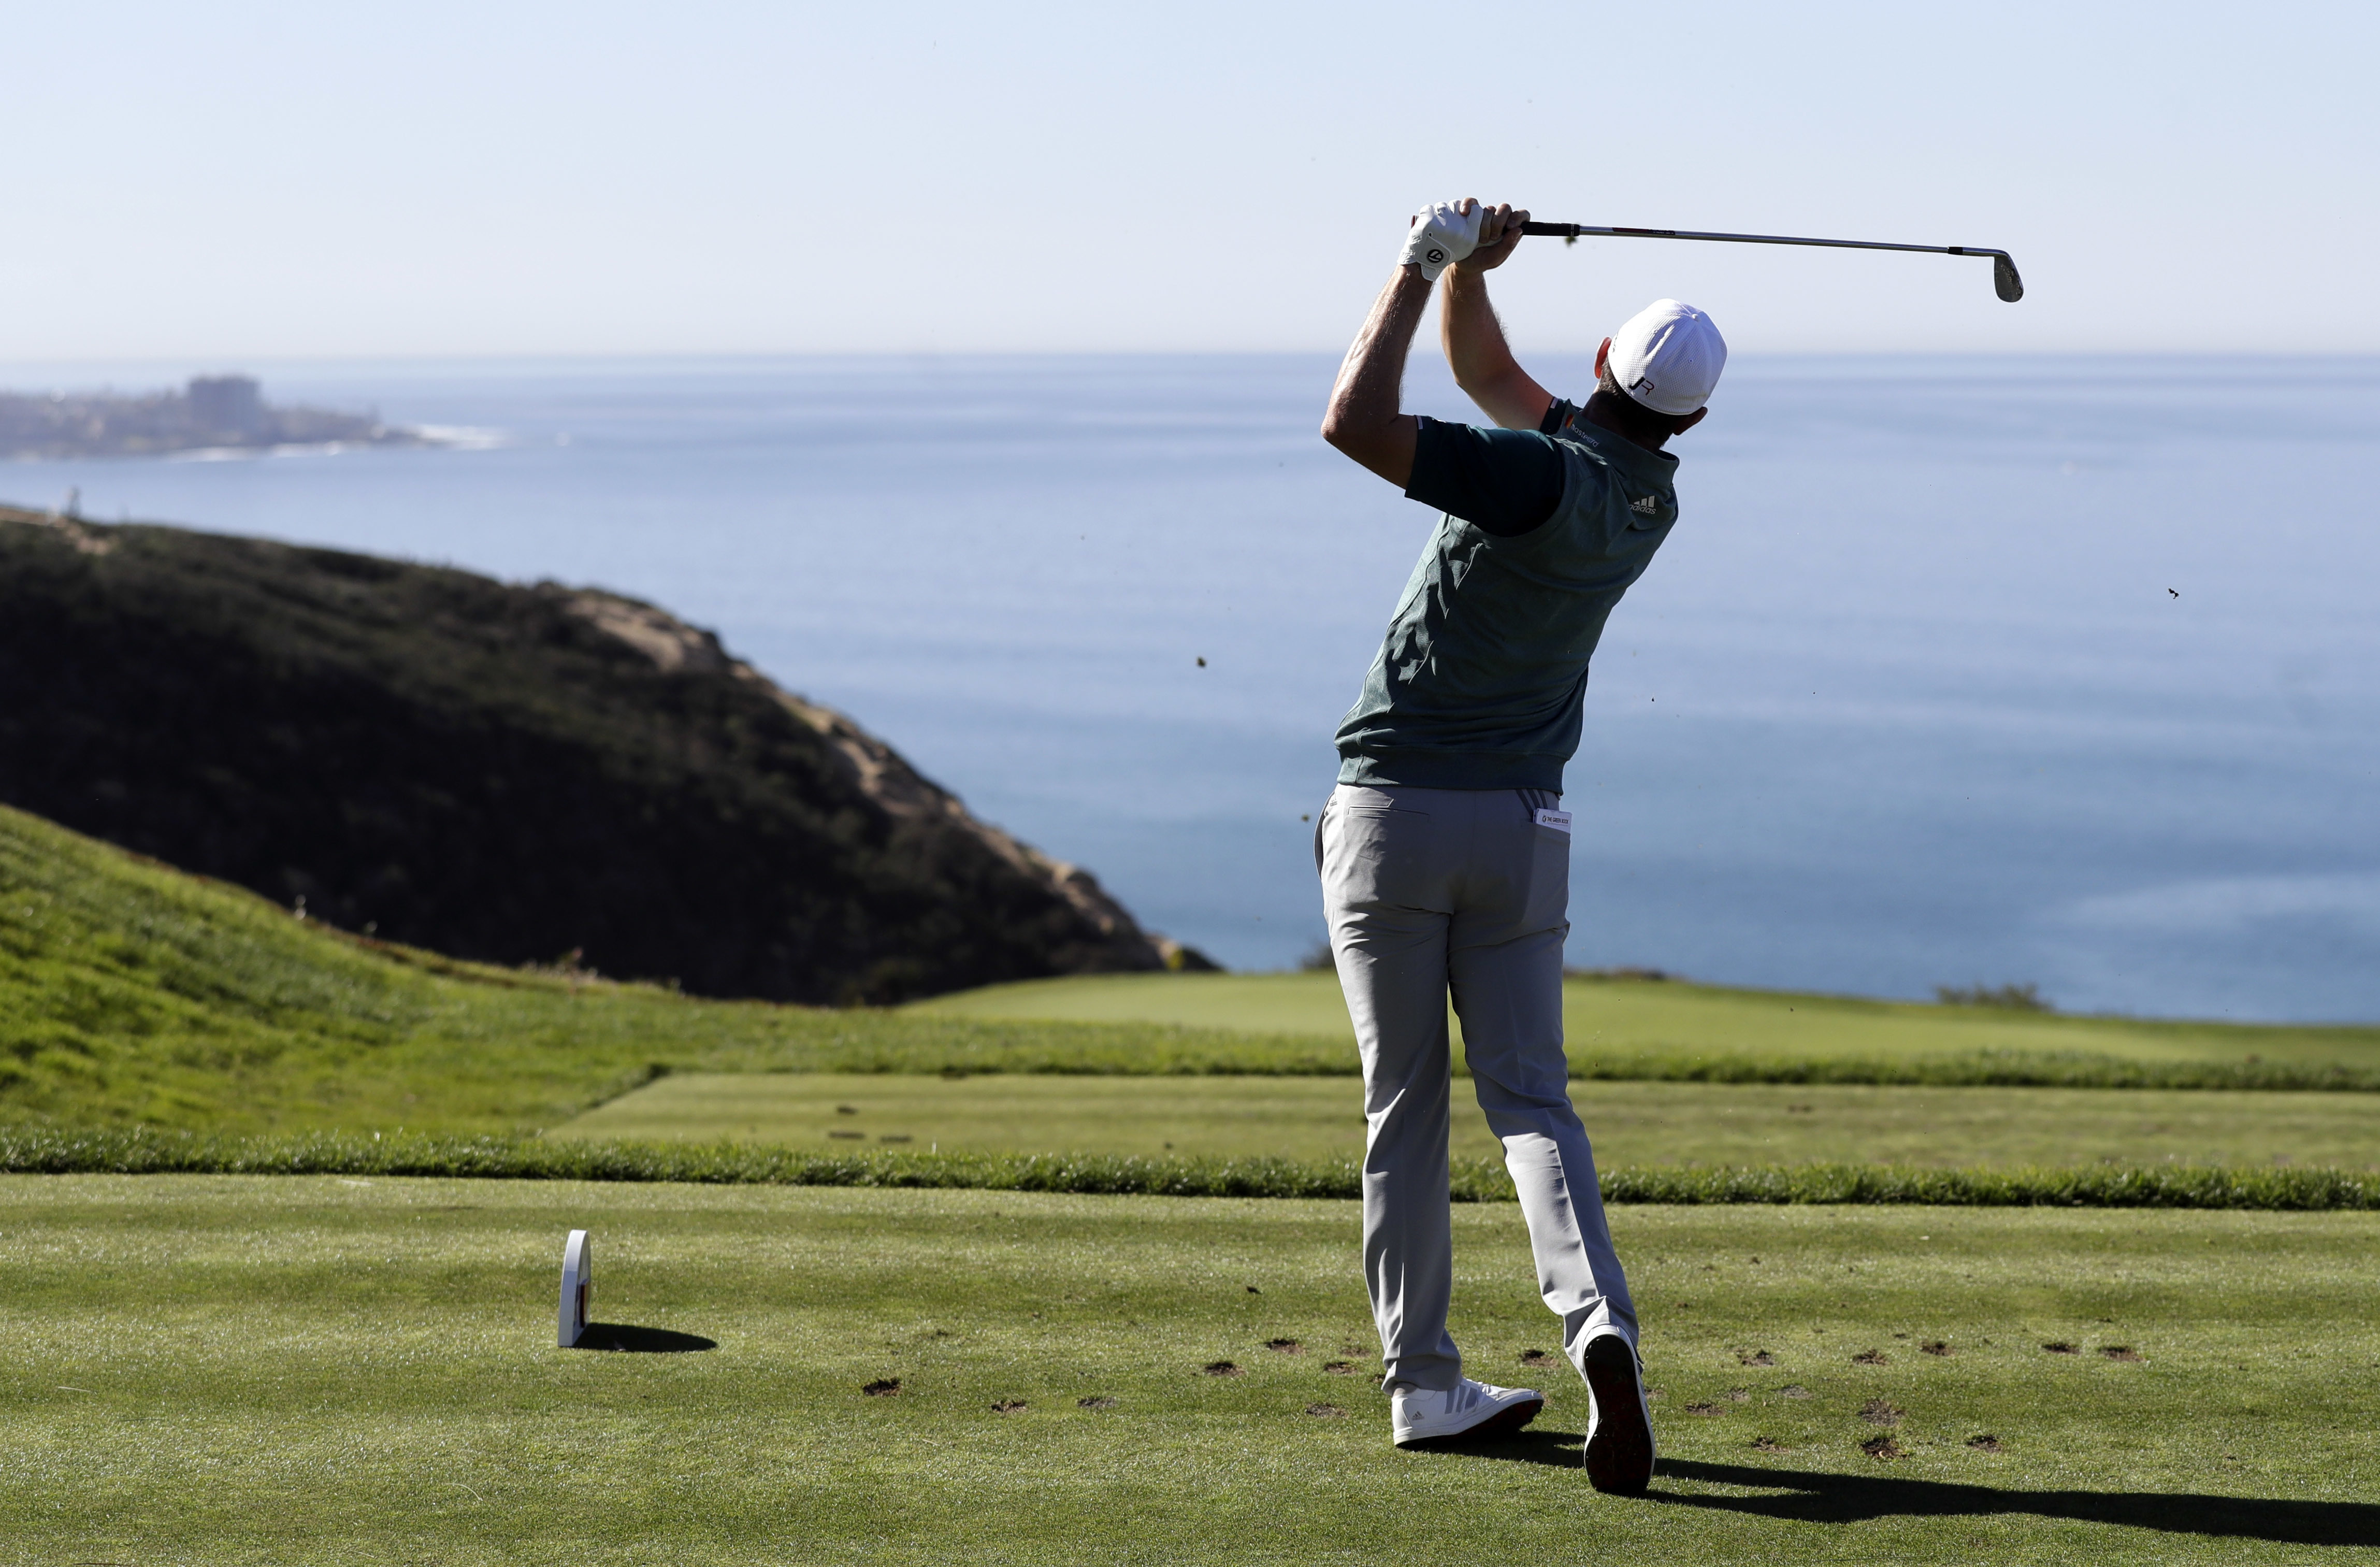 Justin Rose, of England, watches his tee shot on the third hole of the South Course during the third round of the Farmers Insurance Open golf tournament Saturday, Jan. 28, 2017, at Torrey Pines Golf Course in San Diego. (AP Photo/Gregory Bull)